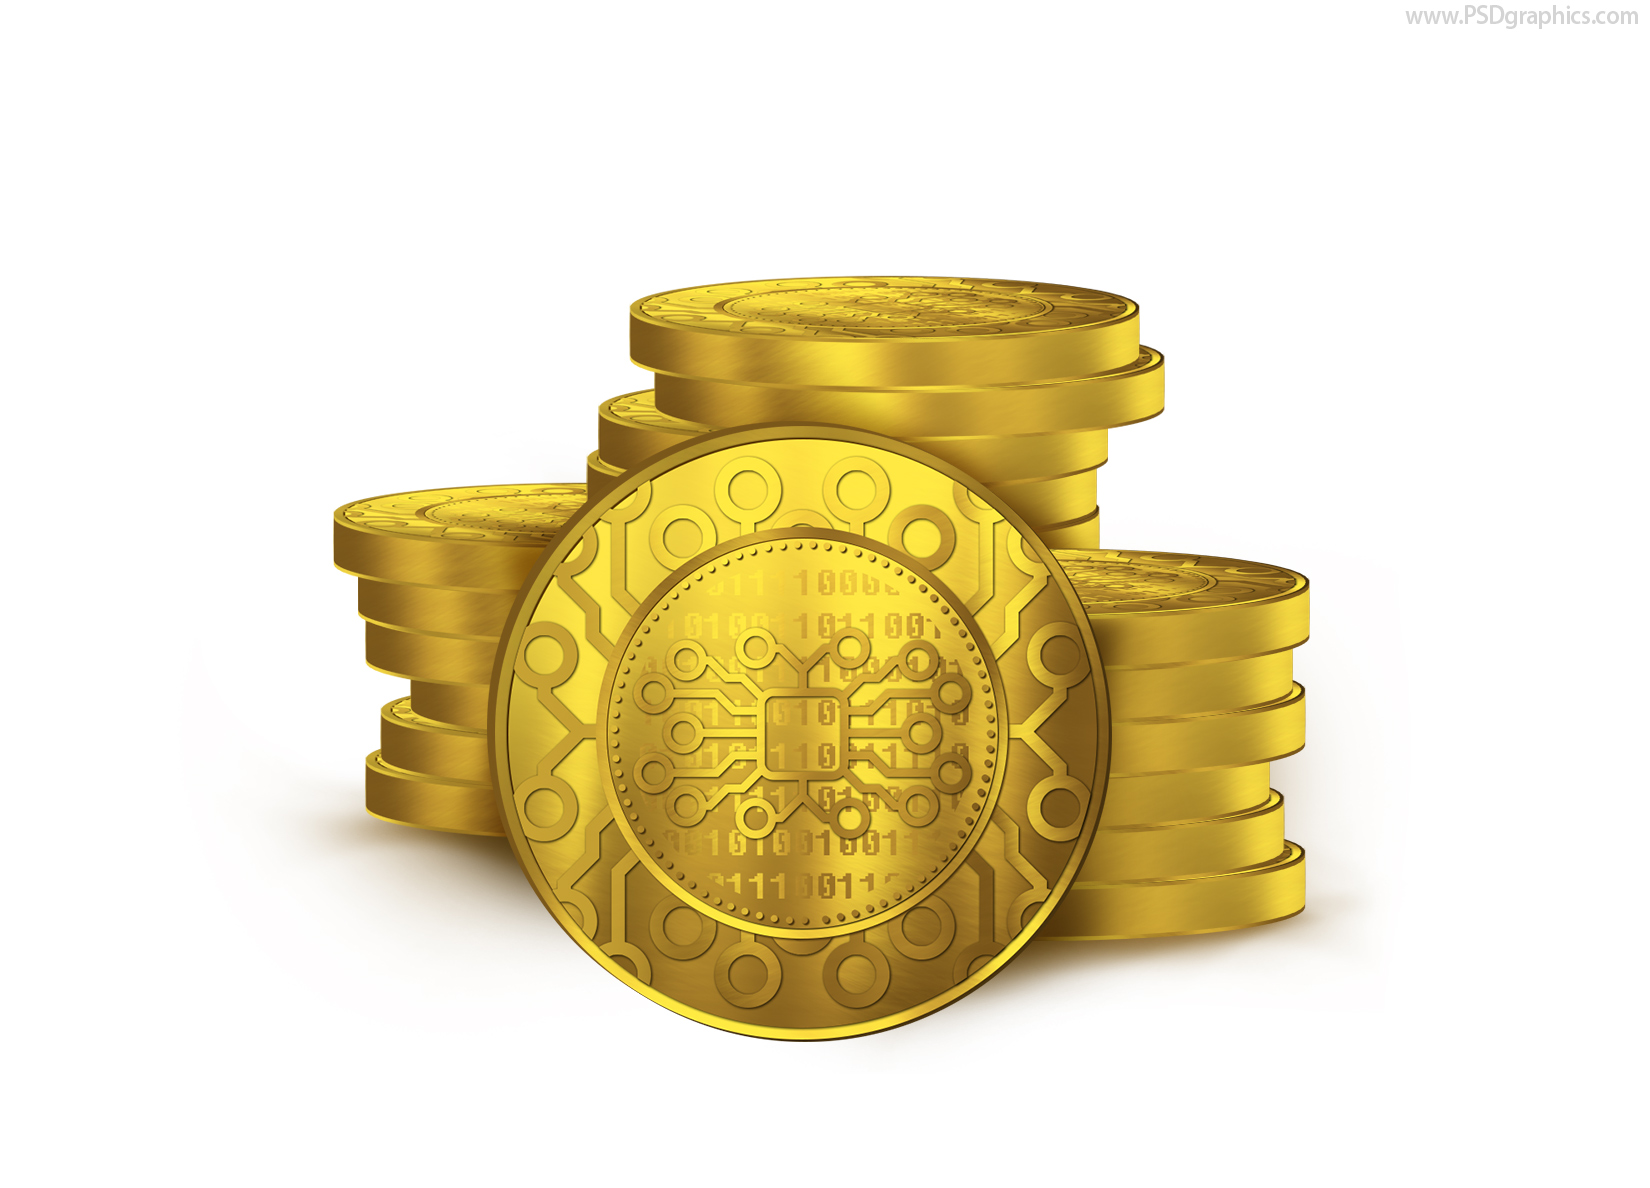 Digital currency coins icon PSD | PSDGraphics